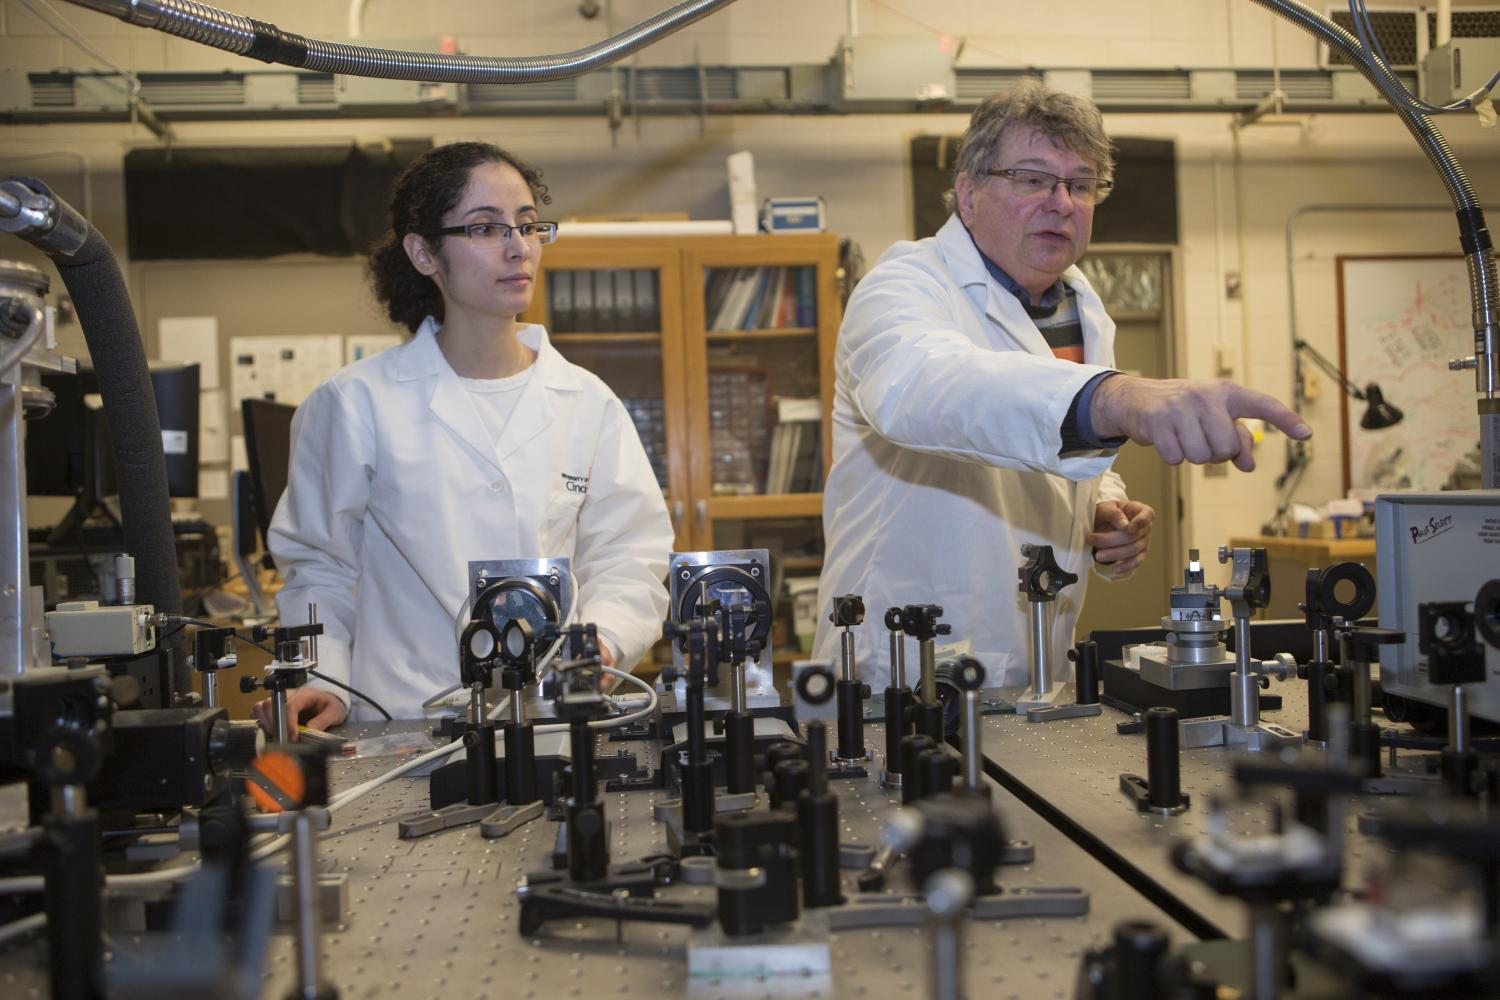 Physicists Experiment With Nanowire In A Promising Field That Could Electrical Circuit Teaching Instrument Resistivitychina Fatemesadat Mohammadi And Associate Professor Hans Peter Wagner Are Exploring Semiconductors To Harness The Power Of Light At Nano Level